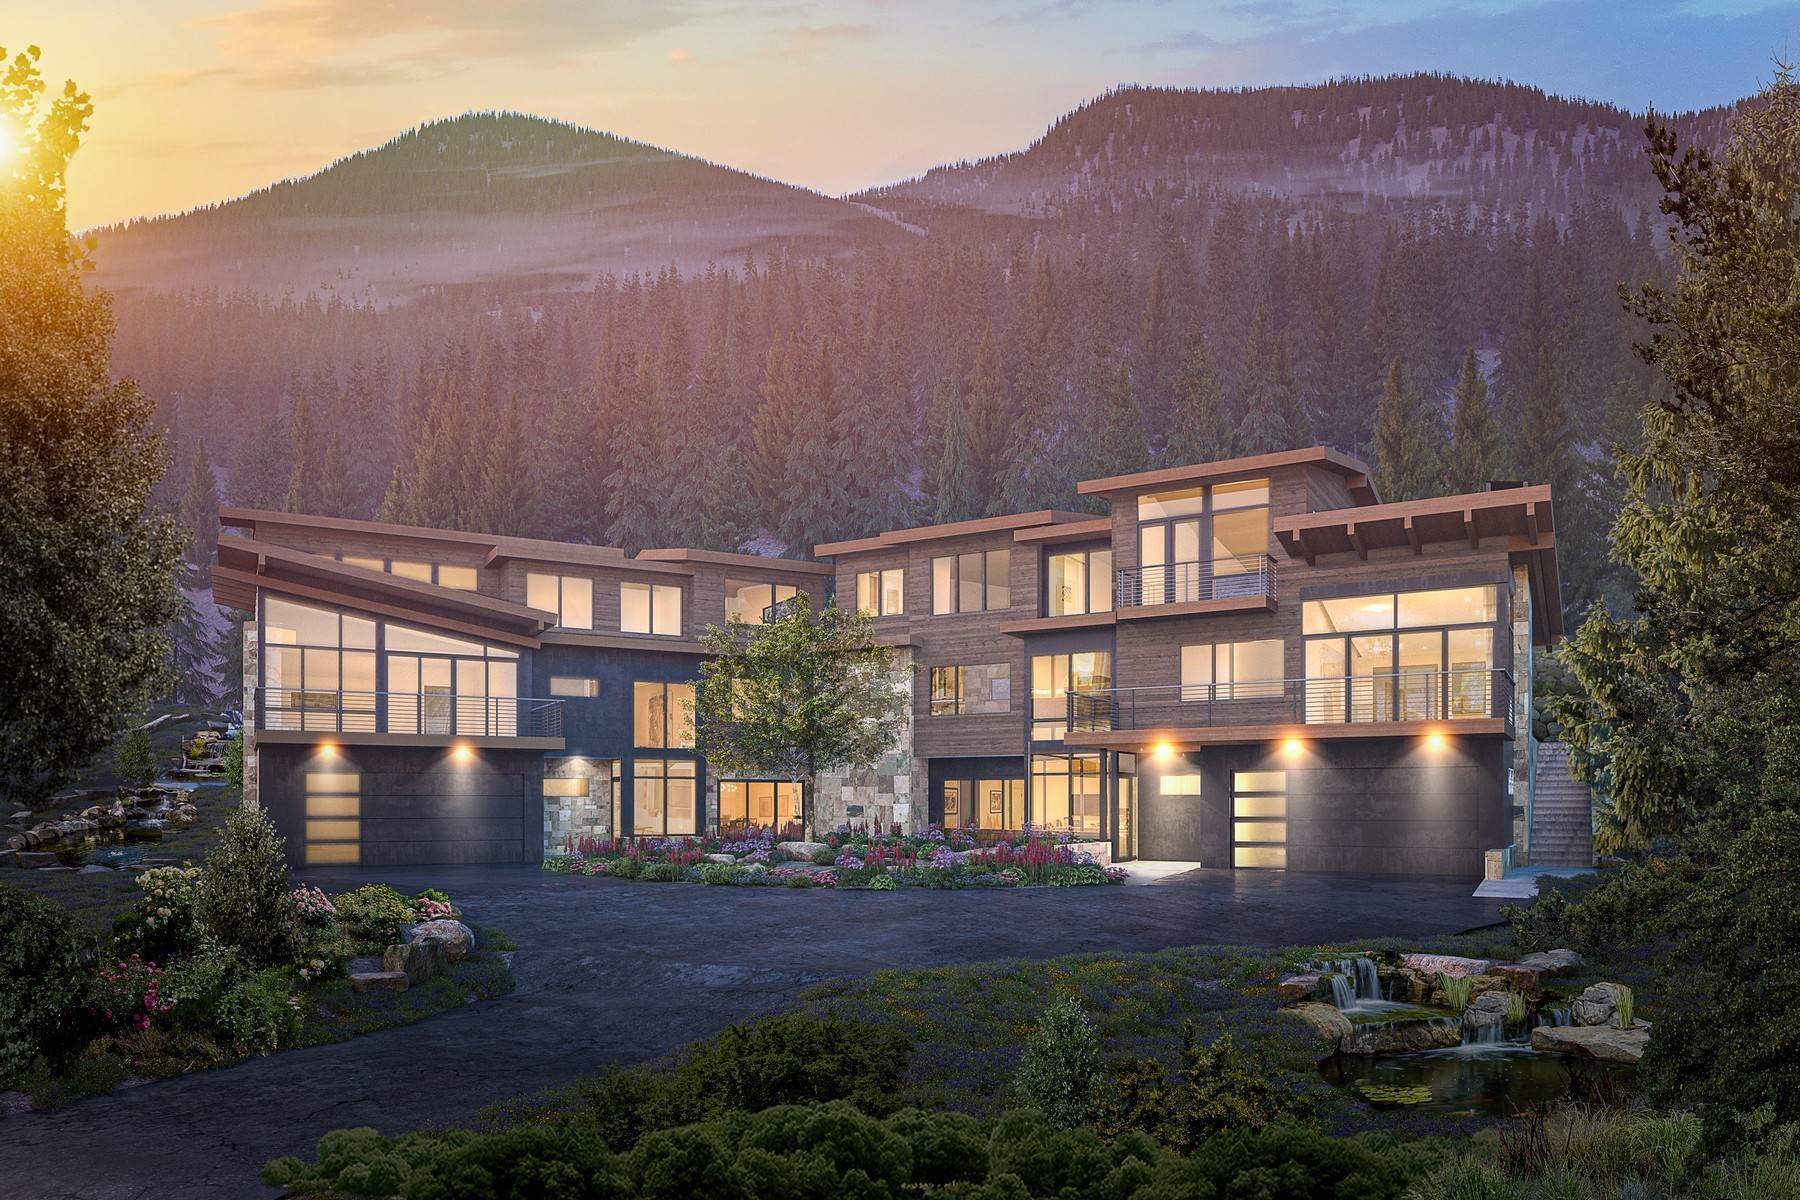 Duplex Homes for Active at New Construction with Striking Architecture 5002 North Snowshoe Lane Vail, Colorado 81657 United States